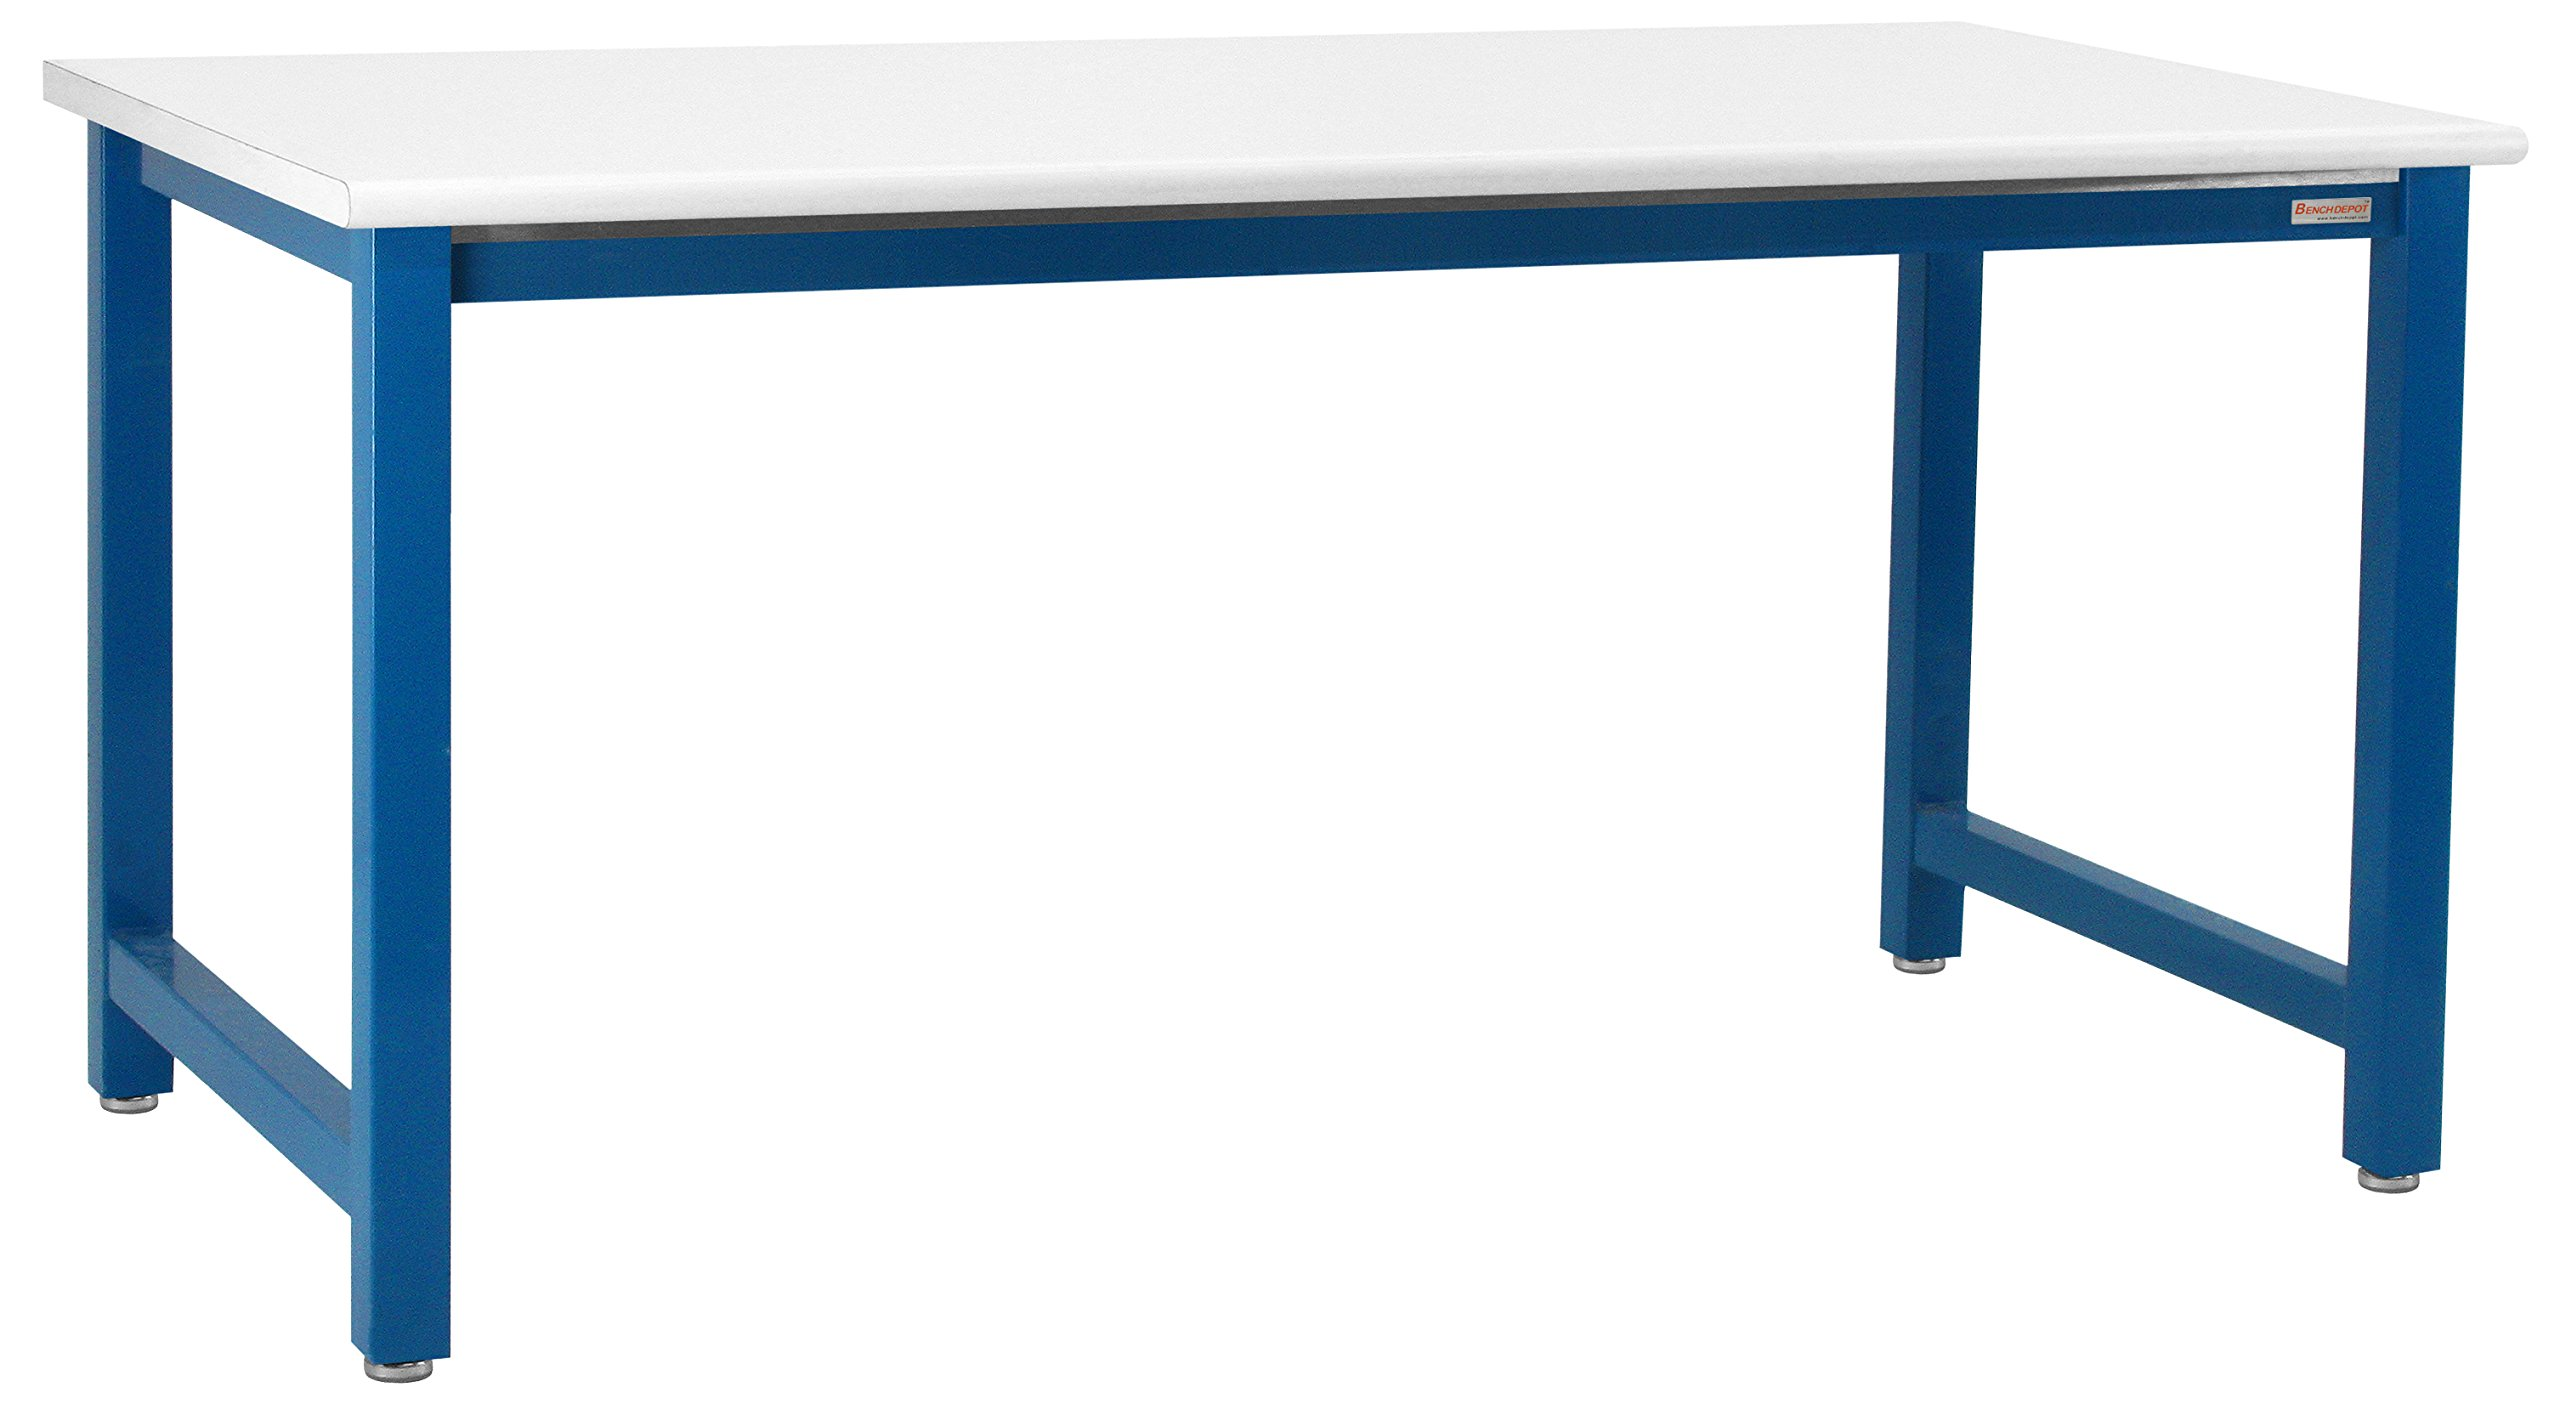 Kennedy Workbench With Cleanroom Class 100 Laminate Top With Round Front Edge, 6,000 lbs Capacity, 36'' Depth x 60'' Width, 30'' Height